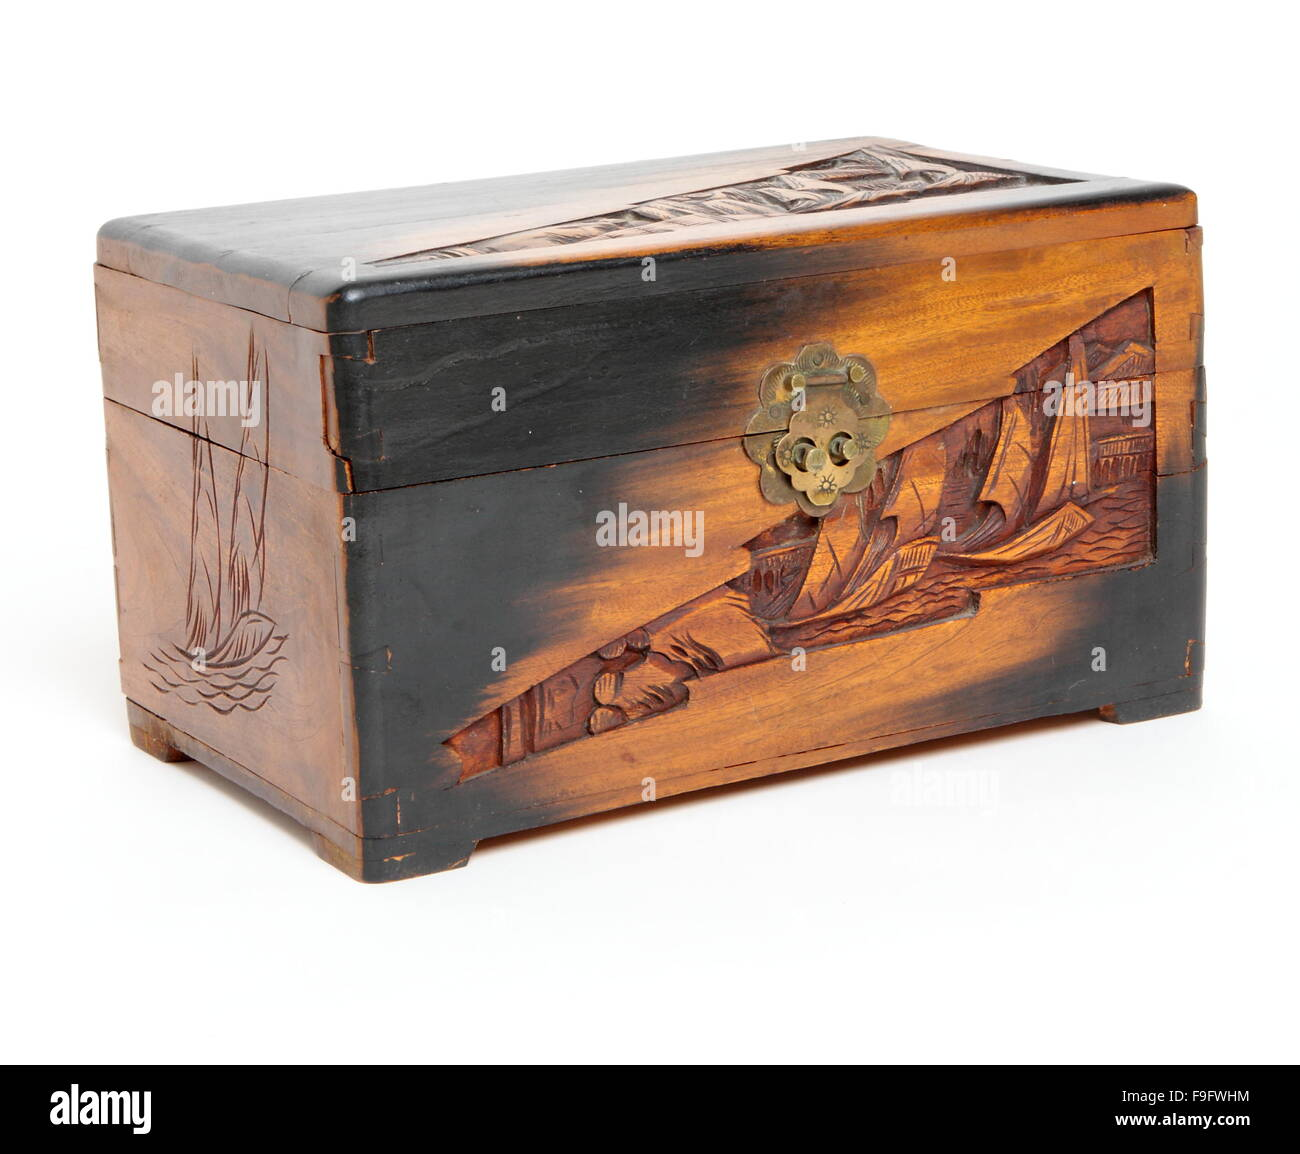 Antique Wooden Box - Stock Image